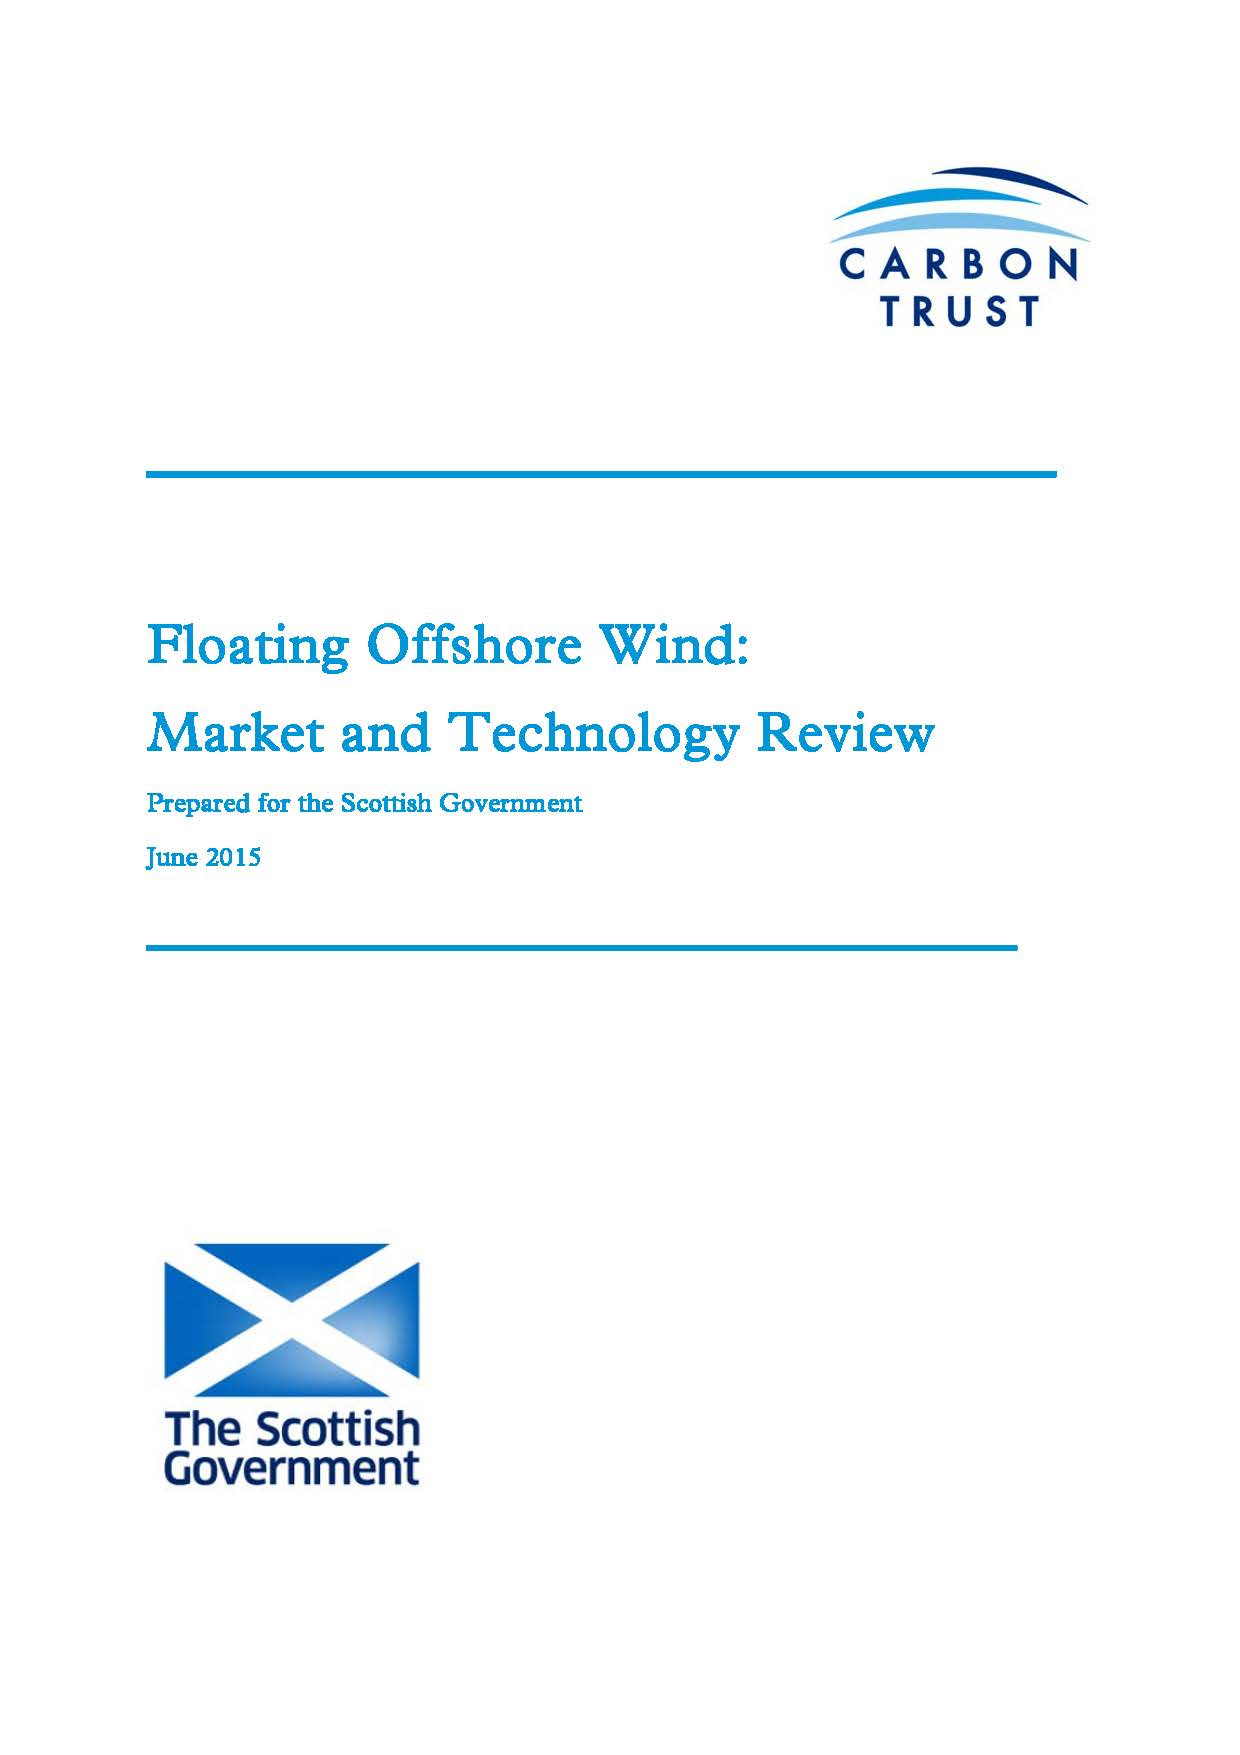 Floating Offshore Wind: Market & Technology Review – The Carbon Trust 2015